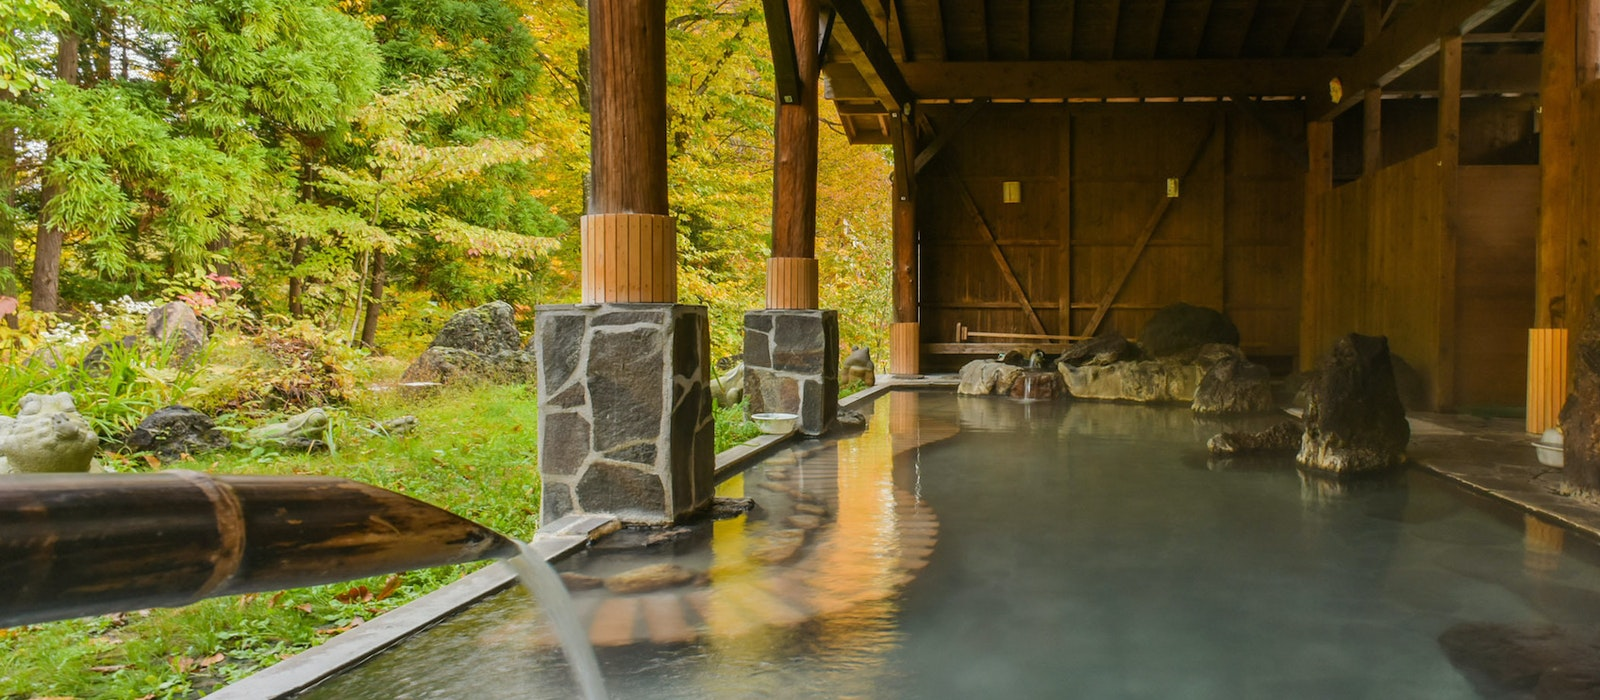 Original onsen japan.jpg?1531426216?ixlib=rails 0.3